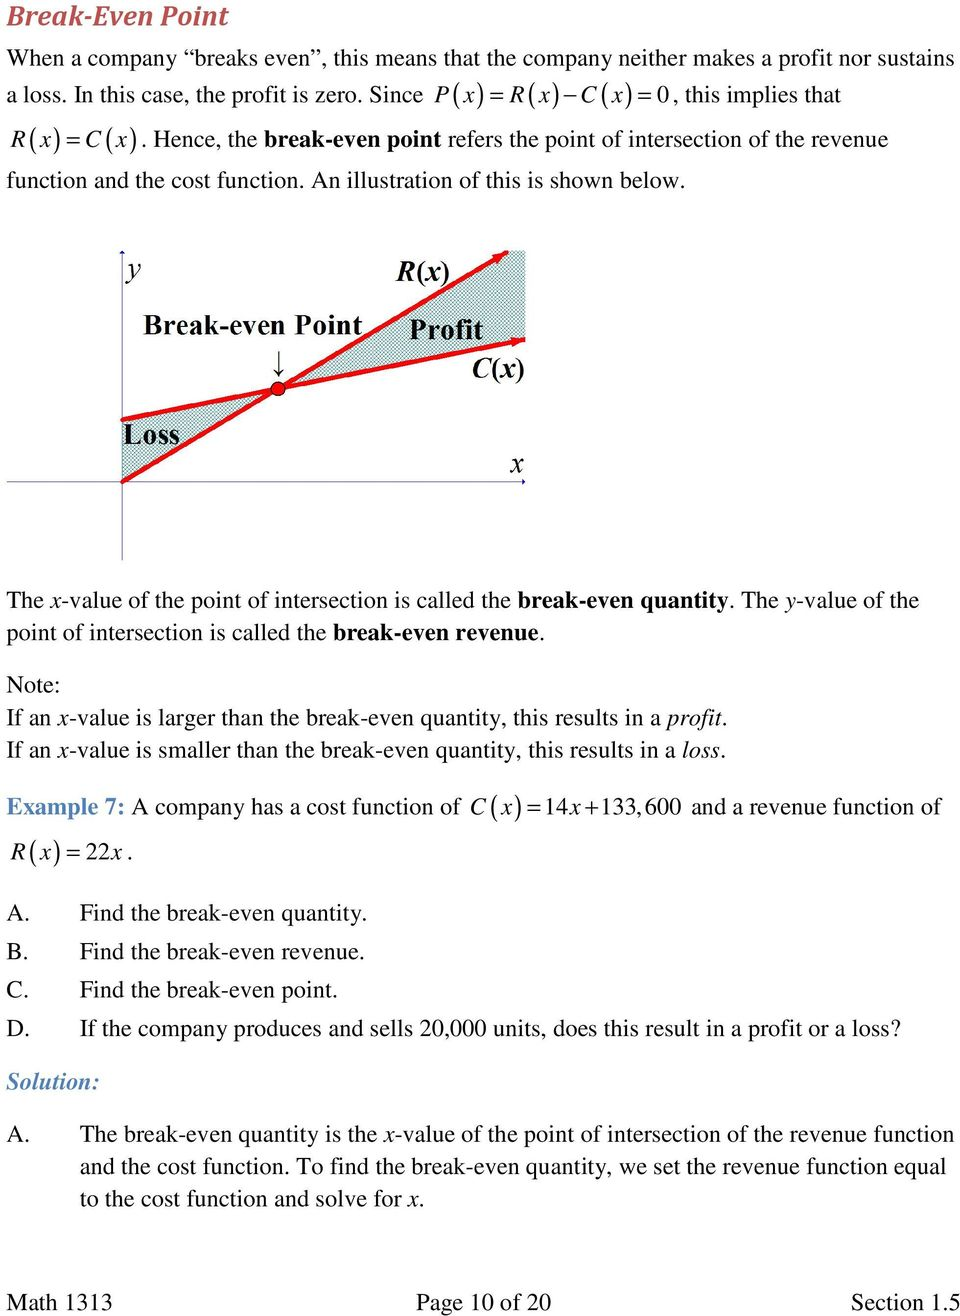 An illustration of this is shown below. The x-value of the point of intersection is called the break-even quantity. The y-value of the point of intersection is called the break-even revenue.